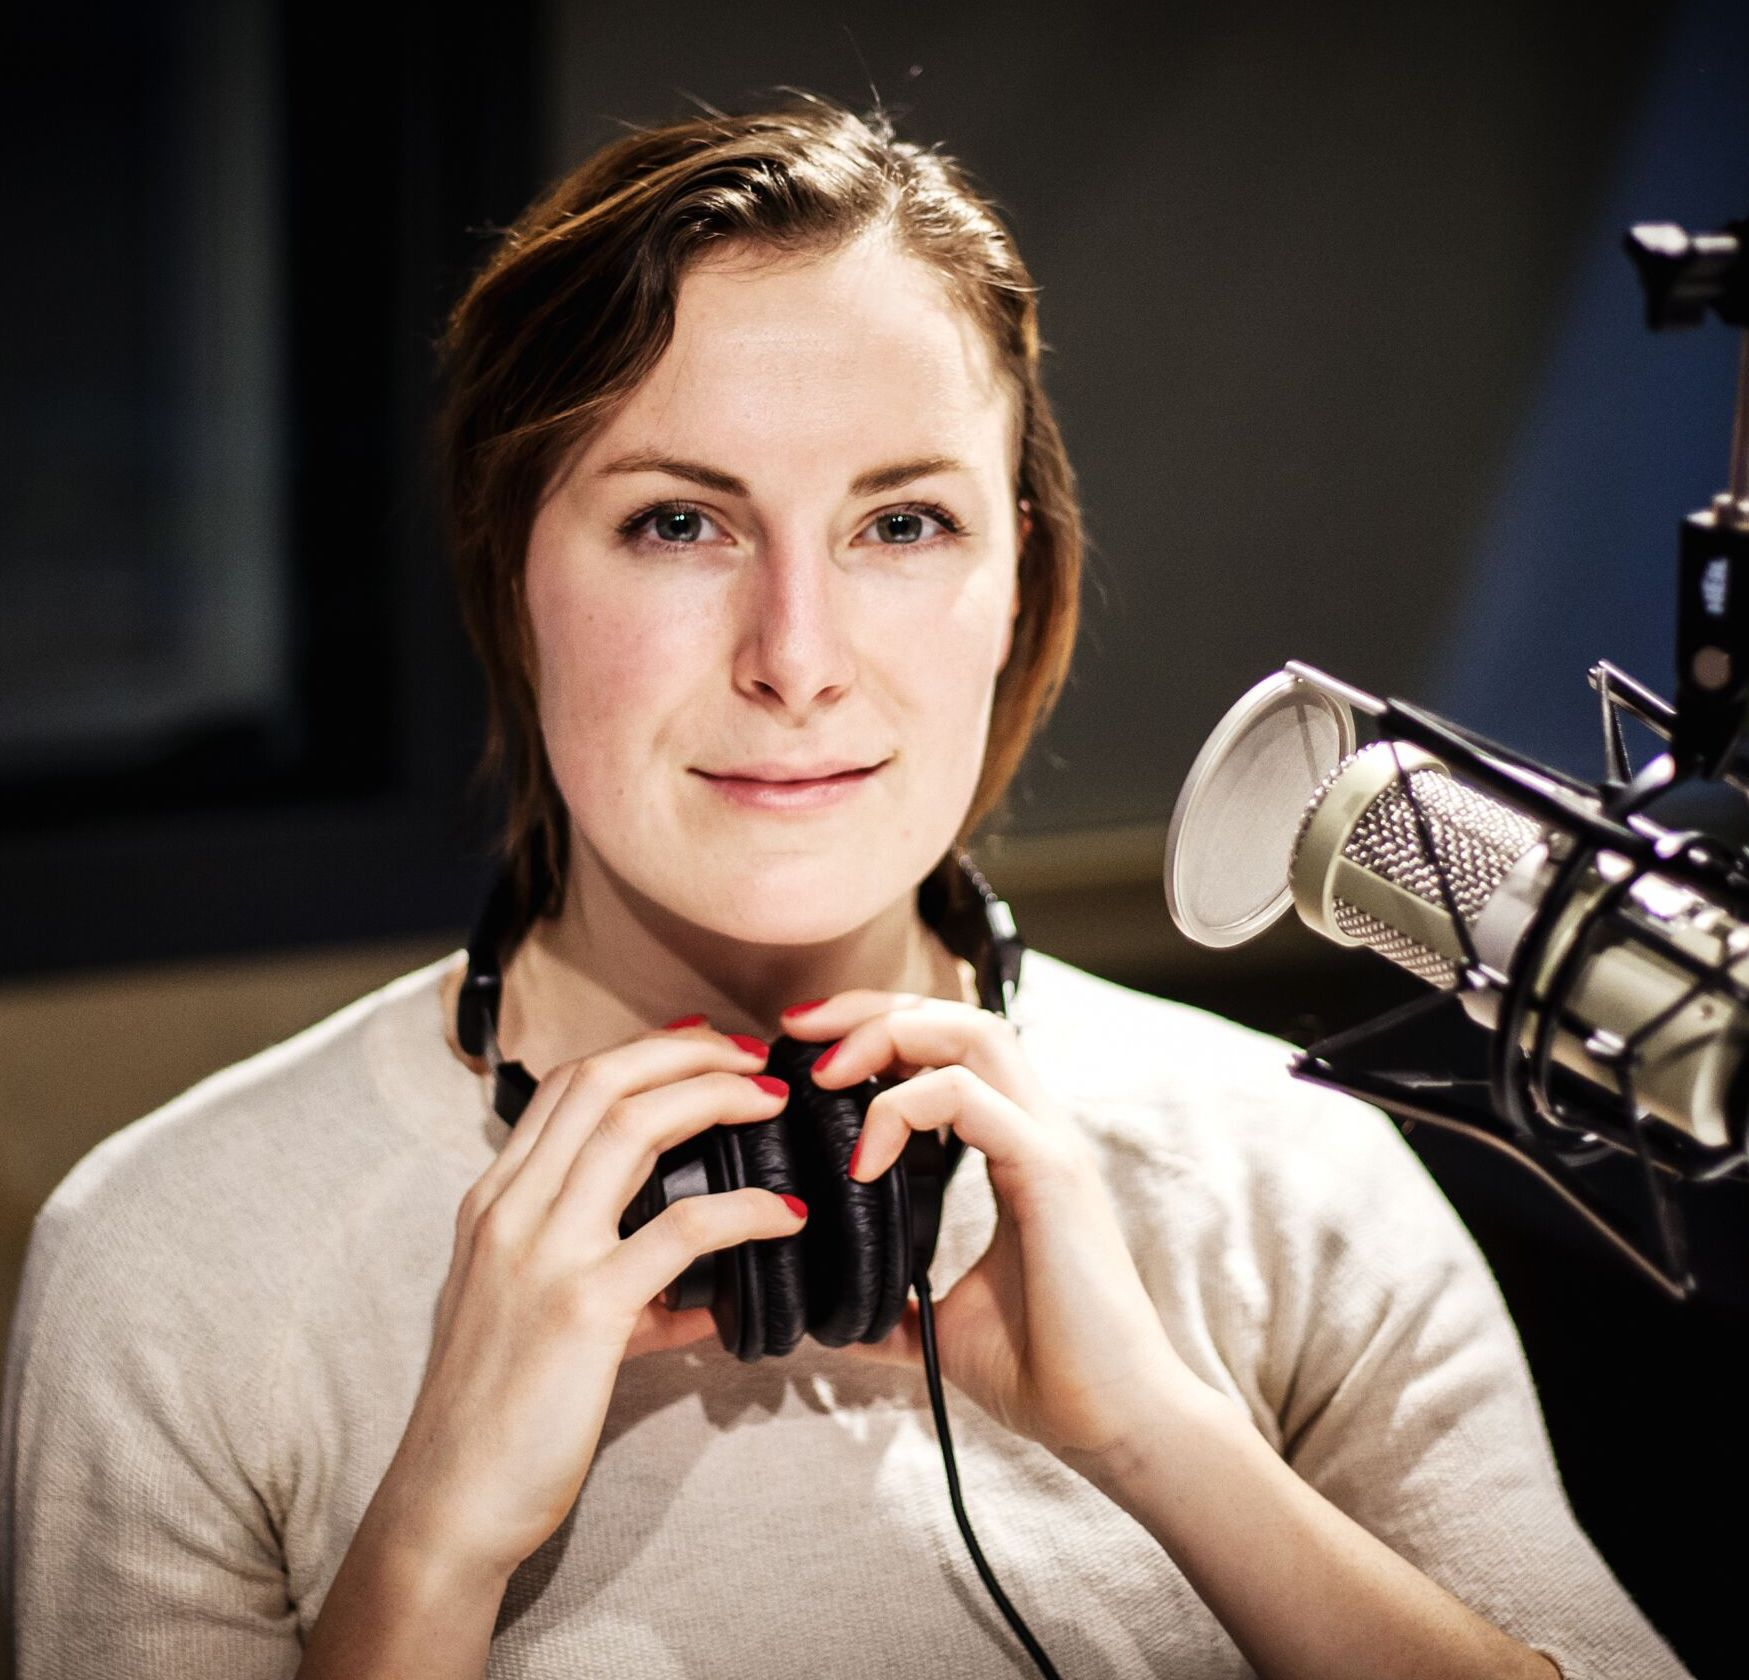 A headshot image of a young woman with brunette hair, wearing a white t-shirt with headphones around her neck. Her hands are clutching the headphones and her fingernails are painted pink.